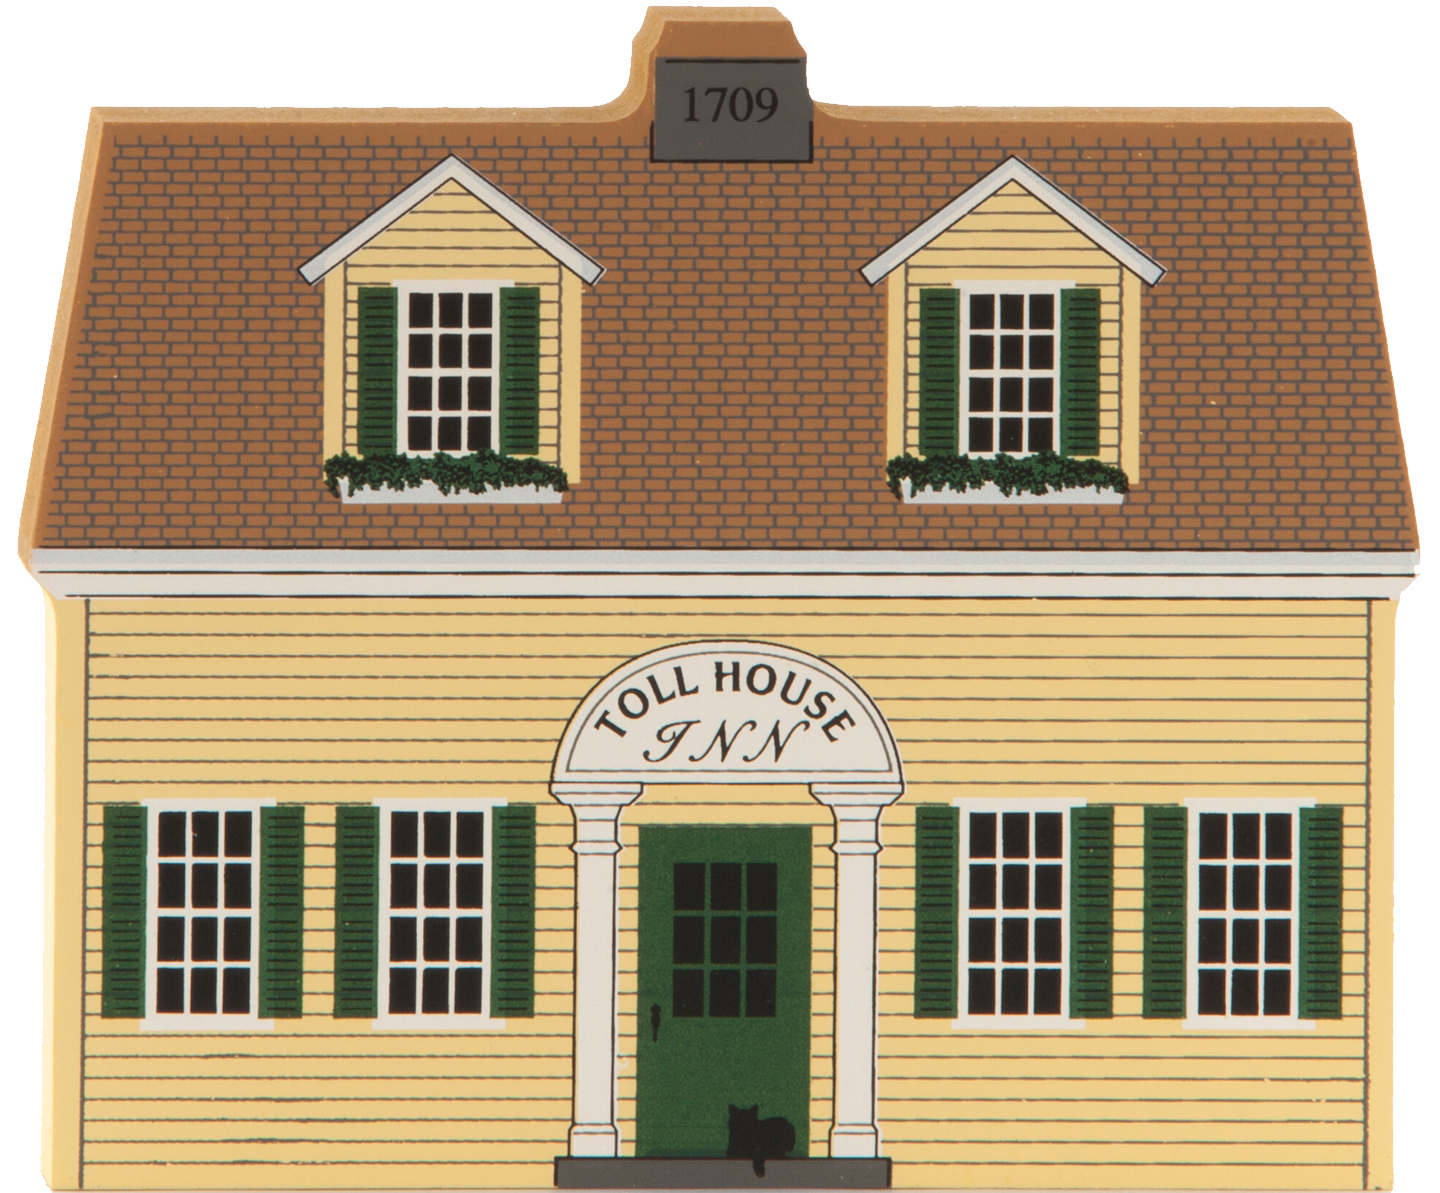 Toll house inn whitman ma the cat 39 s meow village for Wakefield house